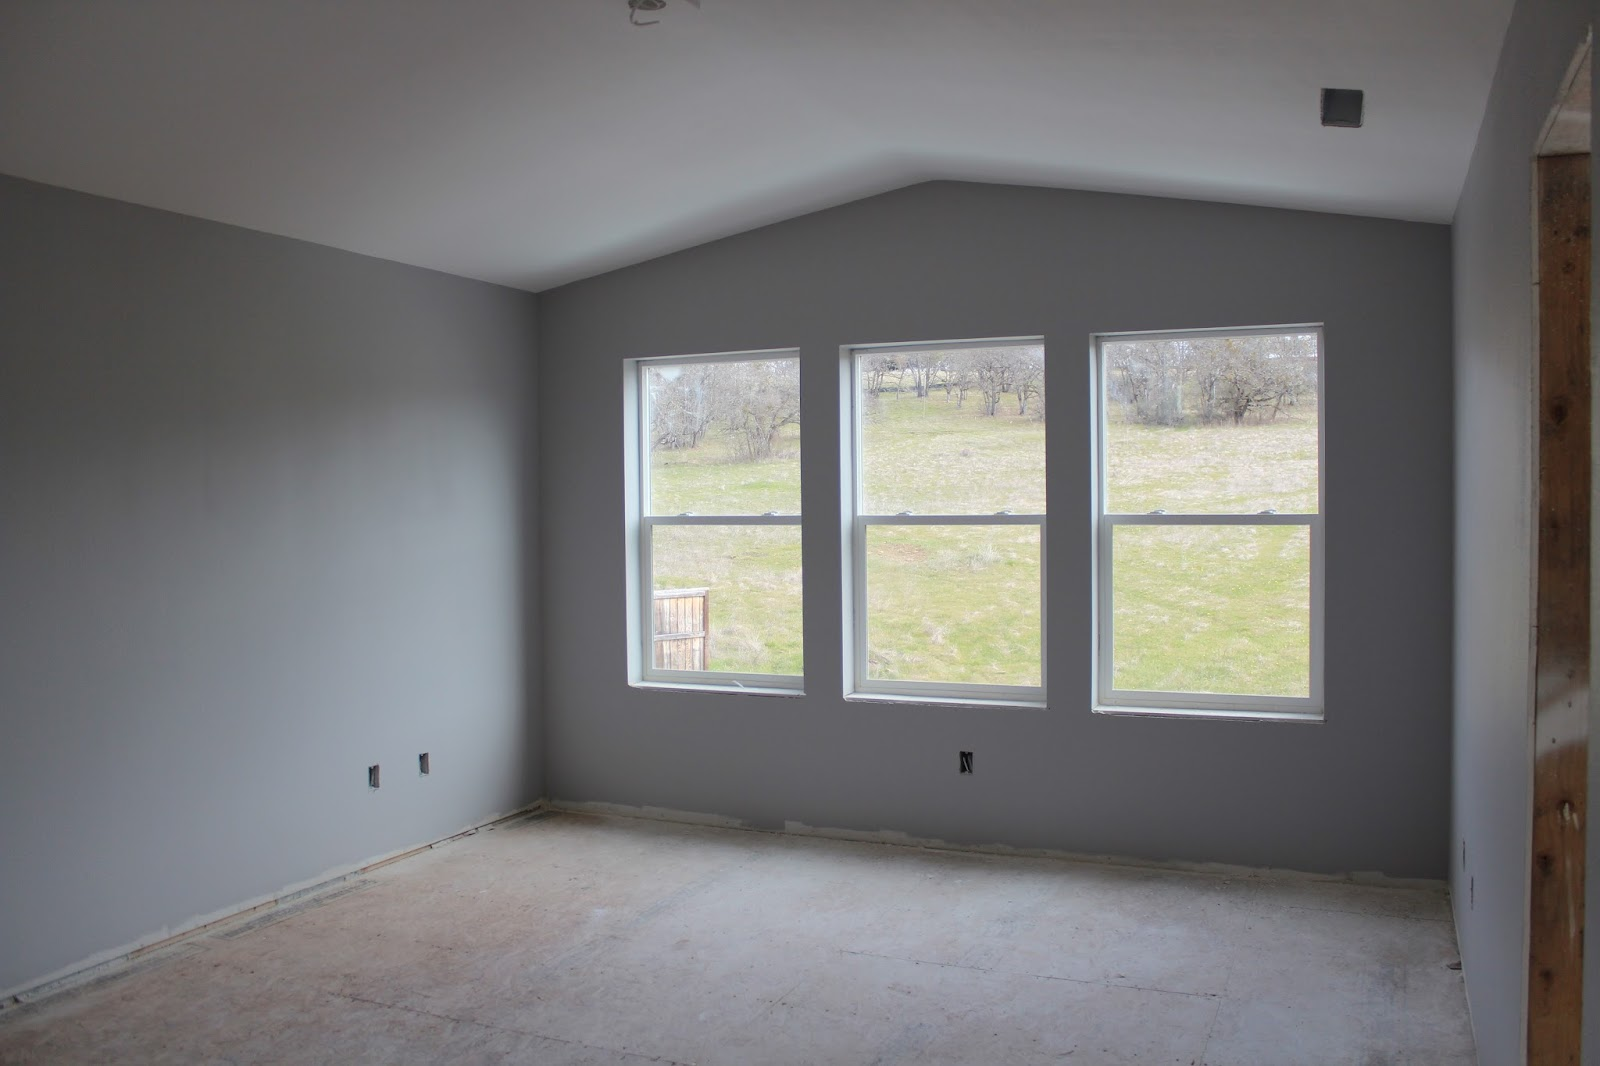 Southern Oregon Dream Were FINISHED painting the interior